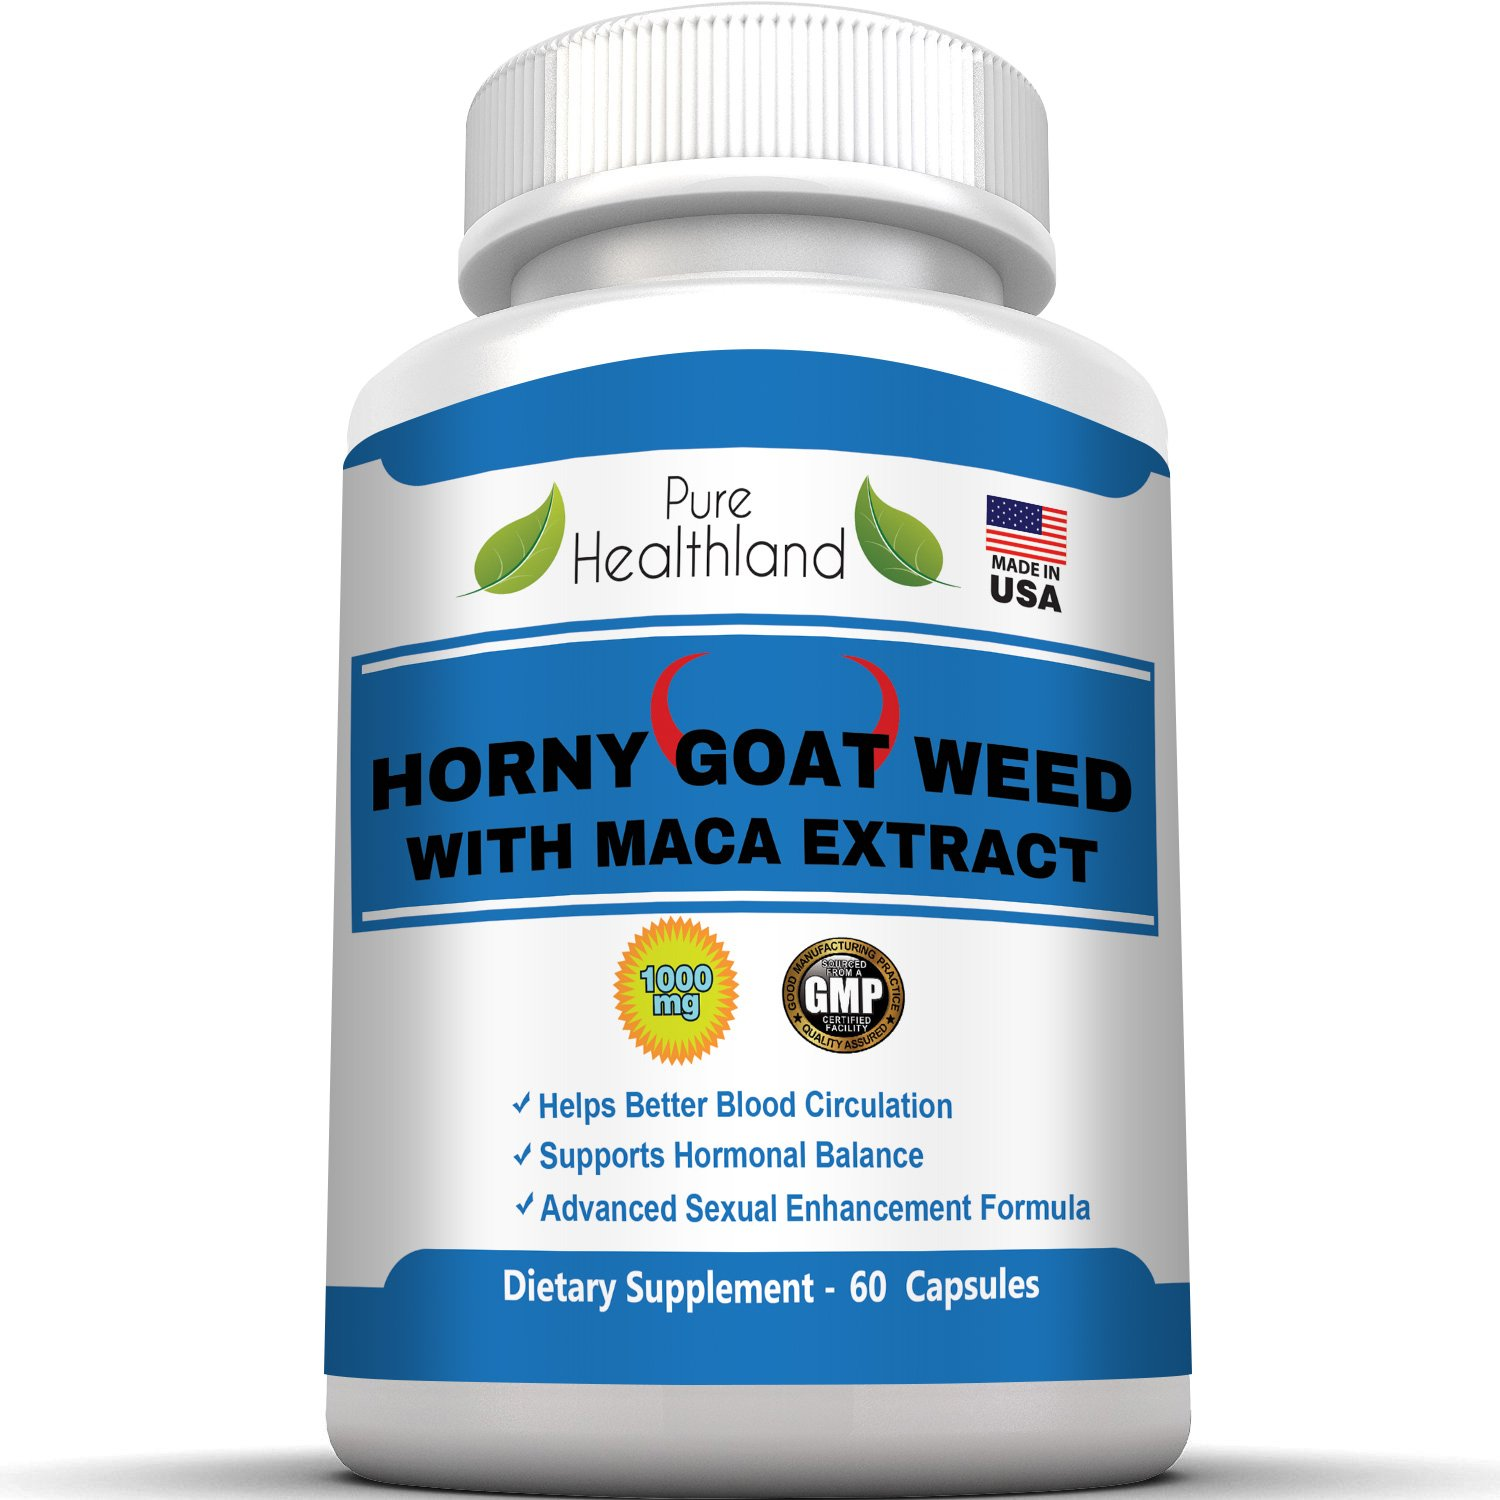 What does horny goat weed do for men